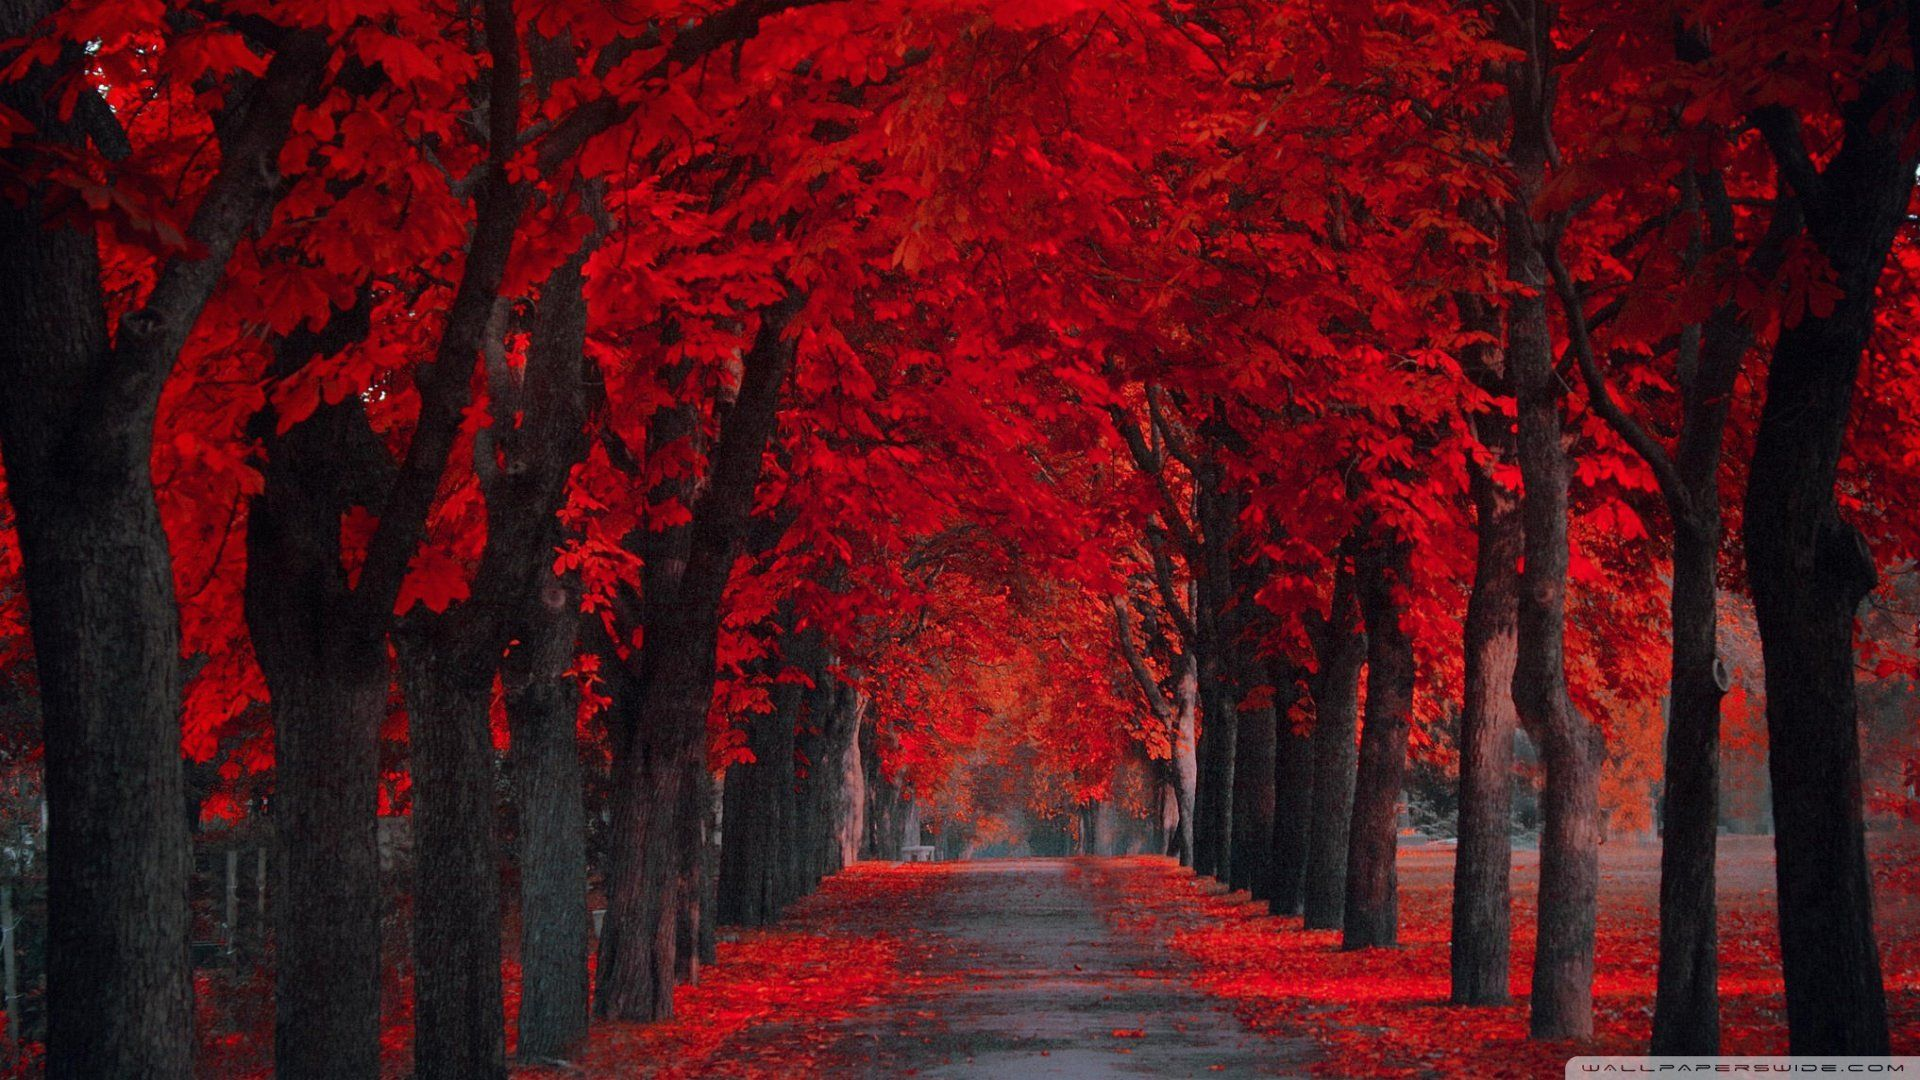 Download Red Fall Leaves Wallpaper Desktop Background Y896d Ahuhah Com Autumn Leaves Wallpaper Red Wallpaper Leaf Wallpaper